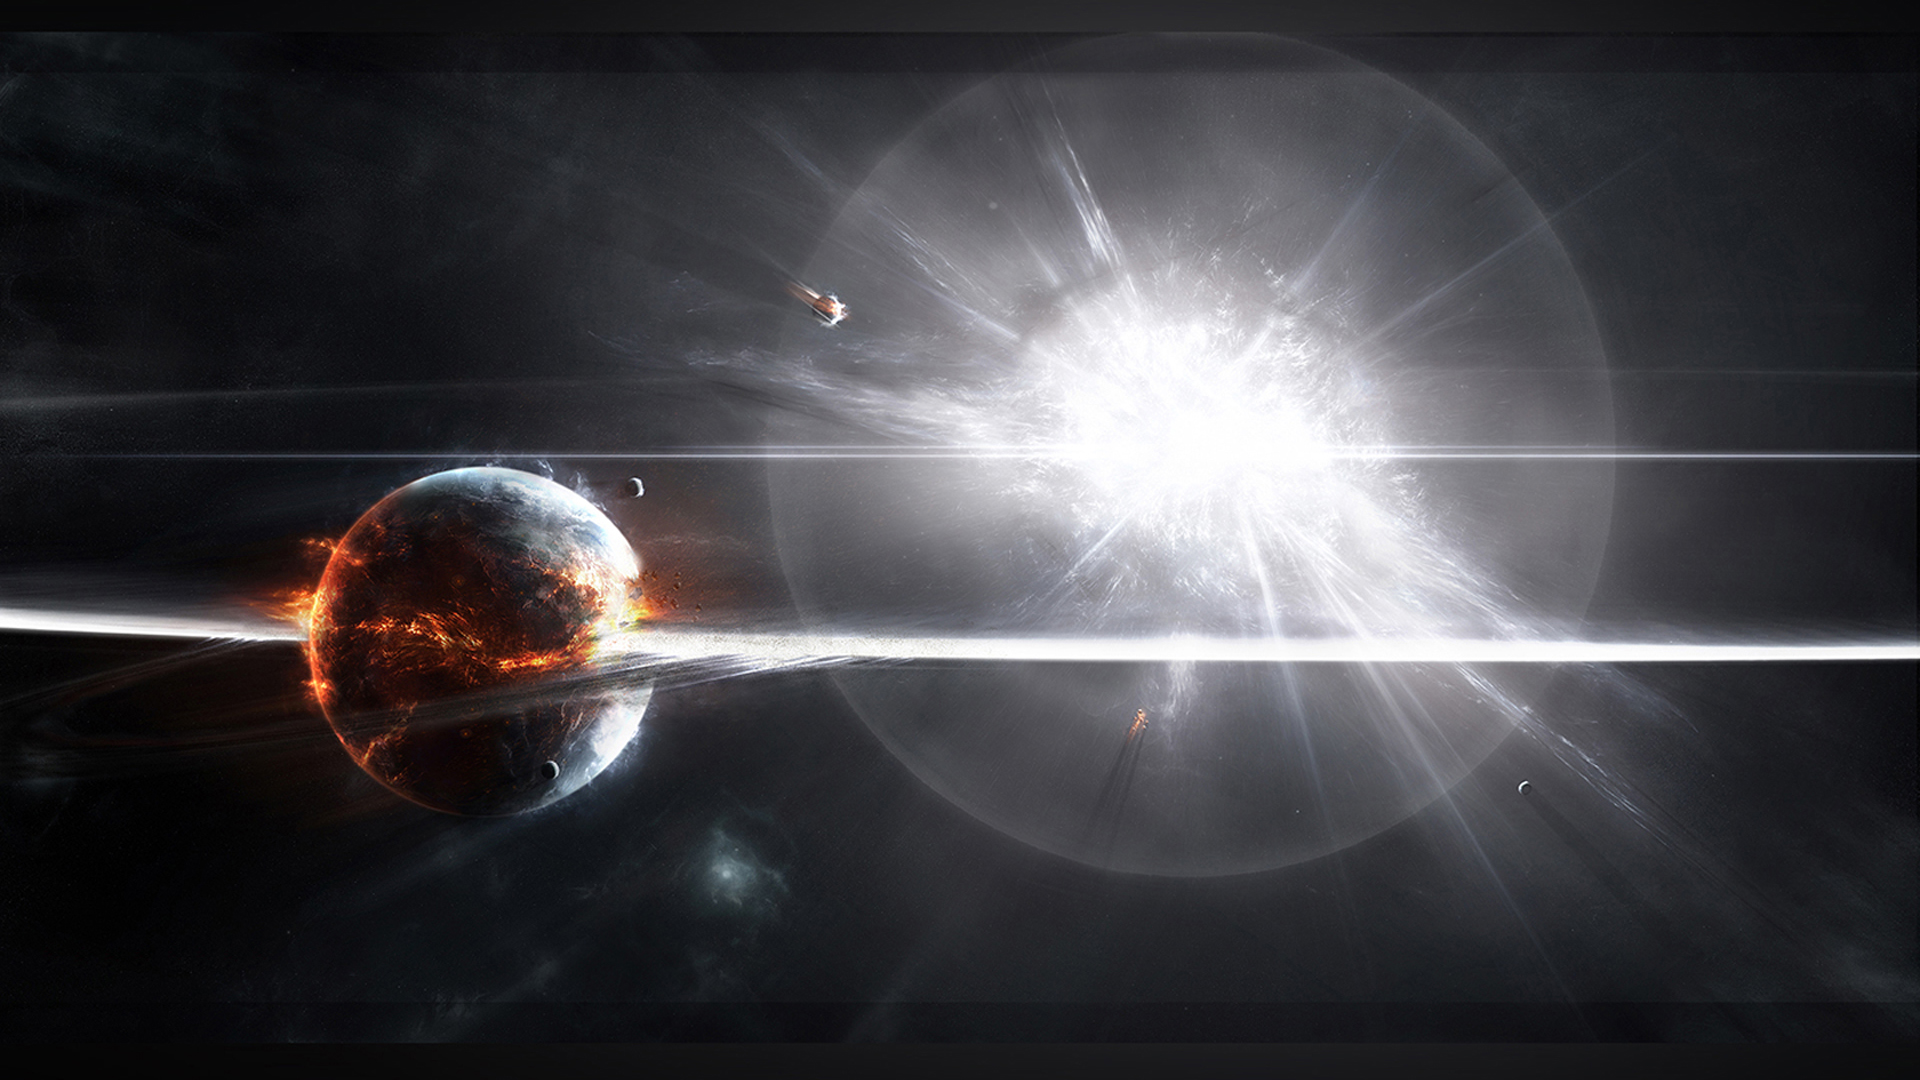 Images of Supernova | 1920x1080